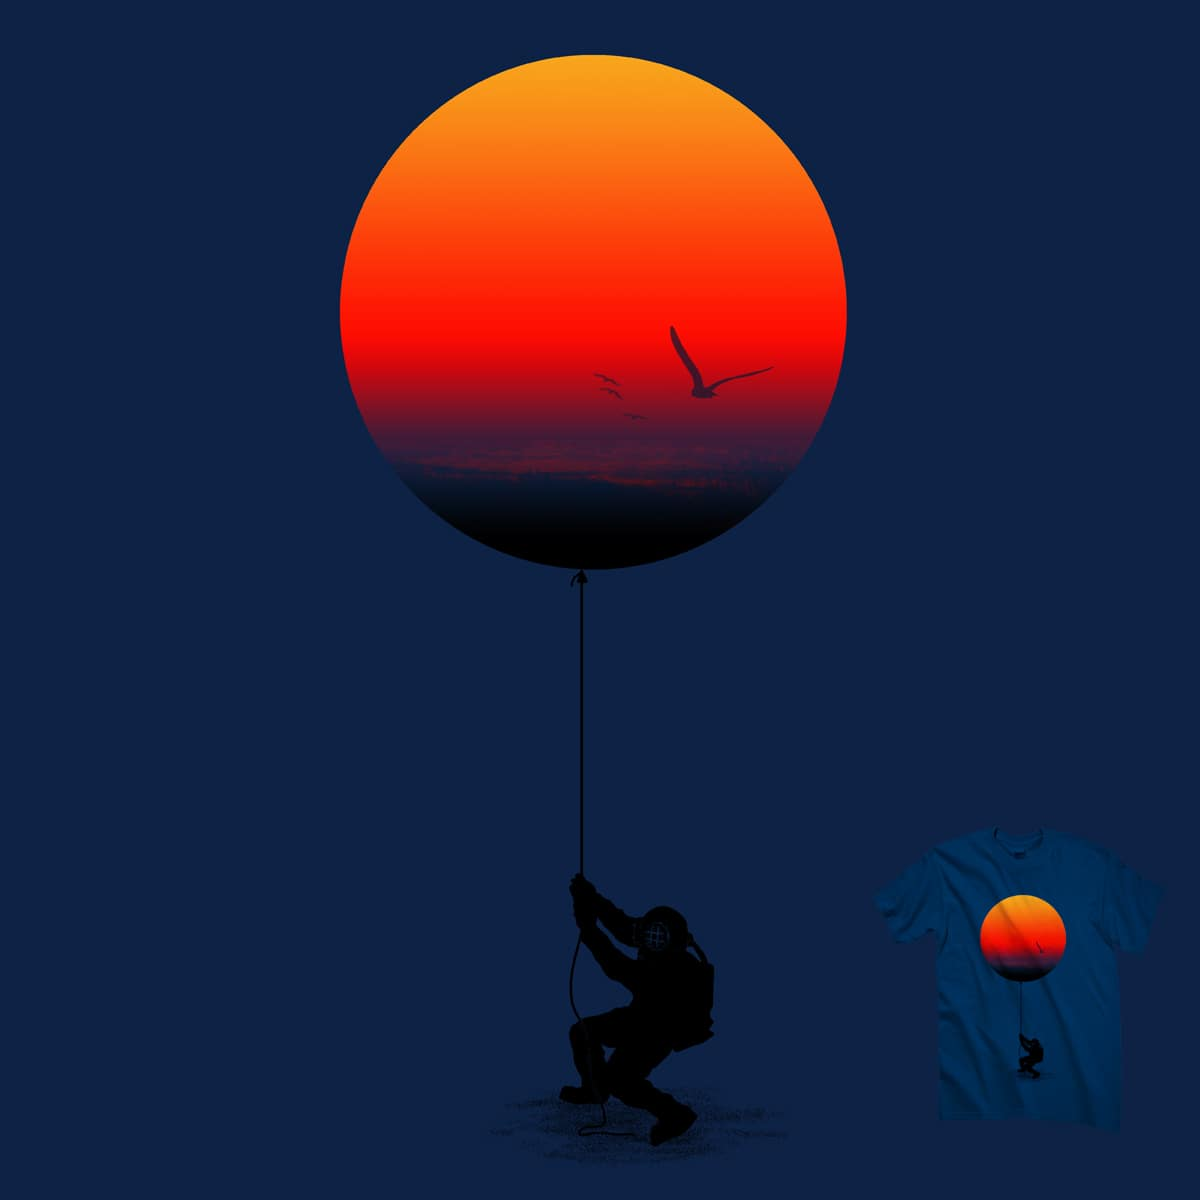 I give you the sunset by kooky love on Threadless